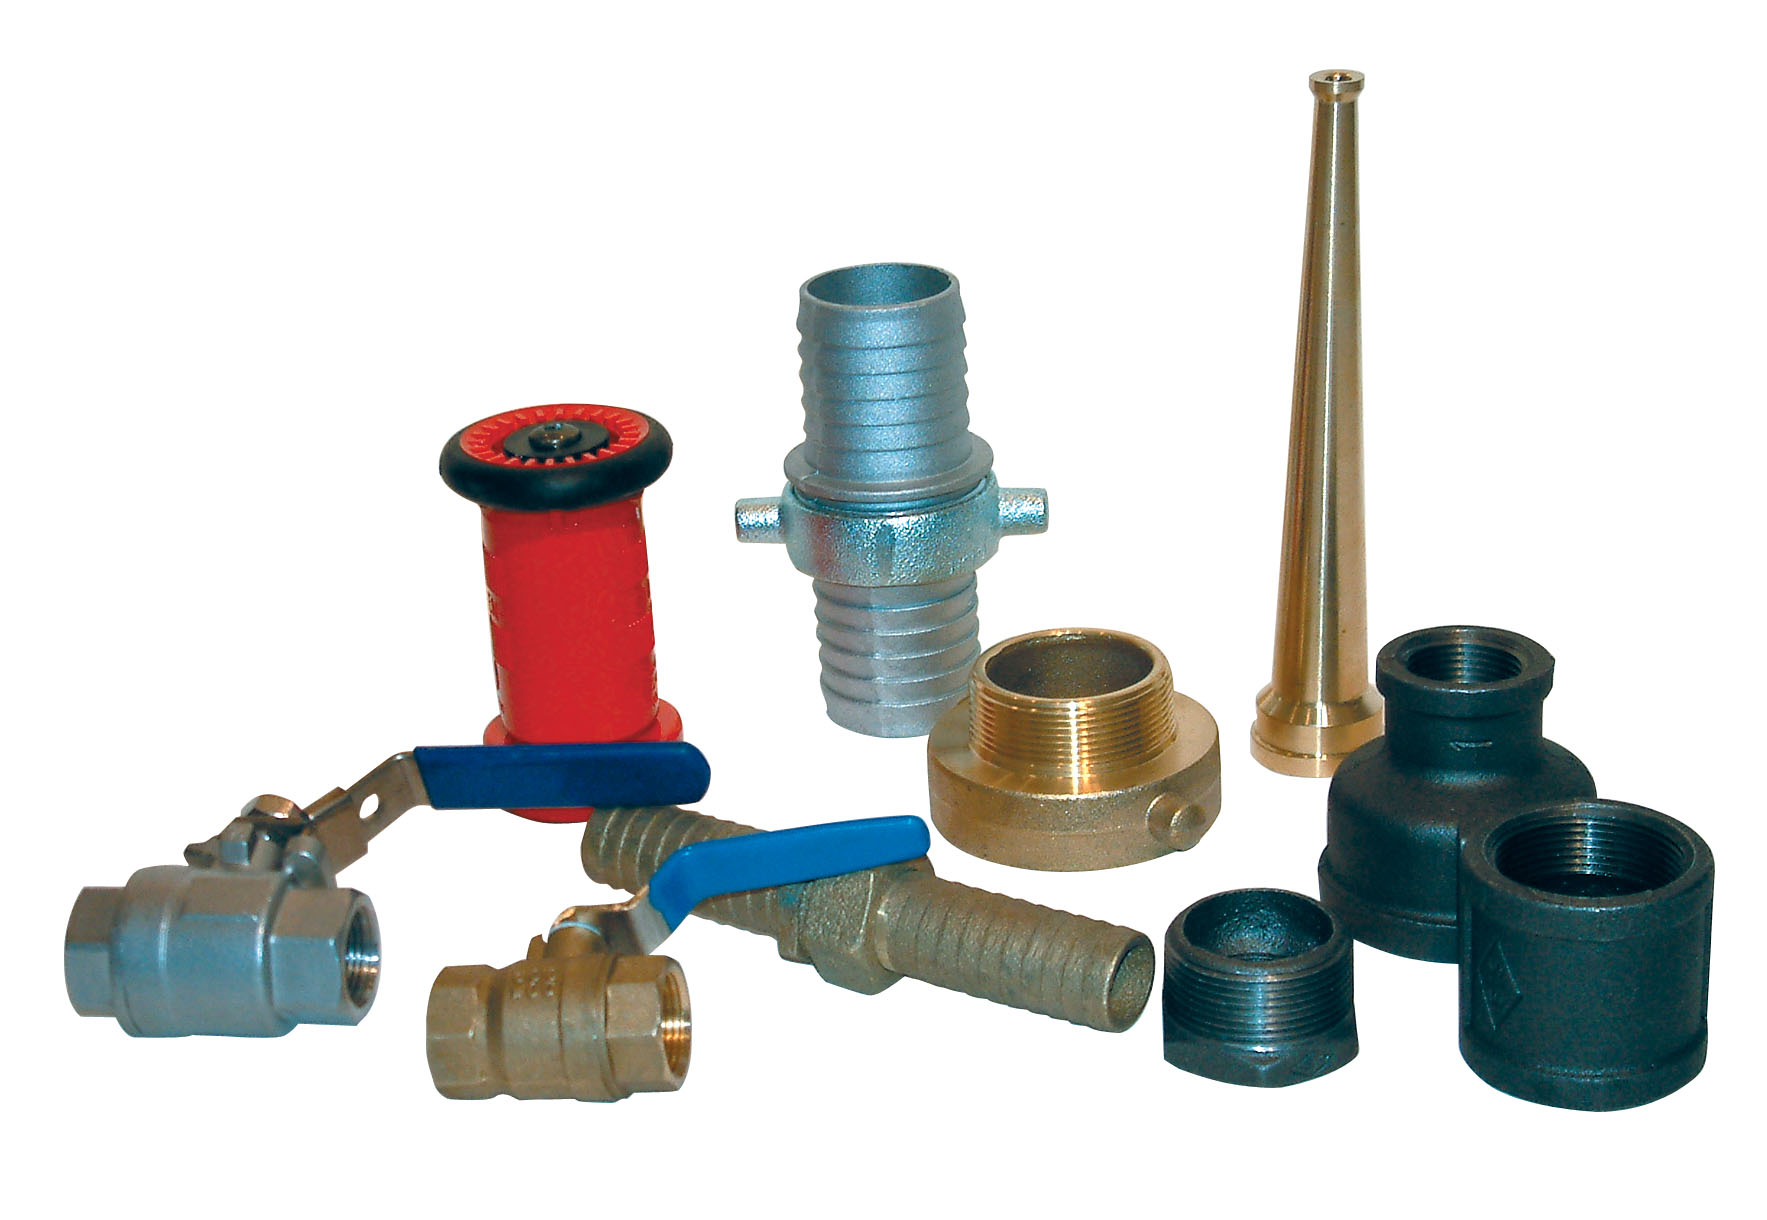 PicturesLogo/DSCF0033-WaterValves.jpg